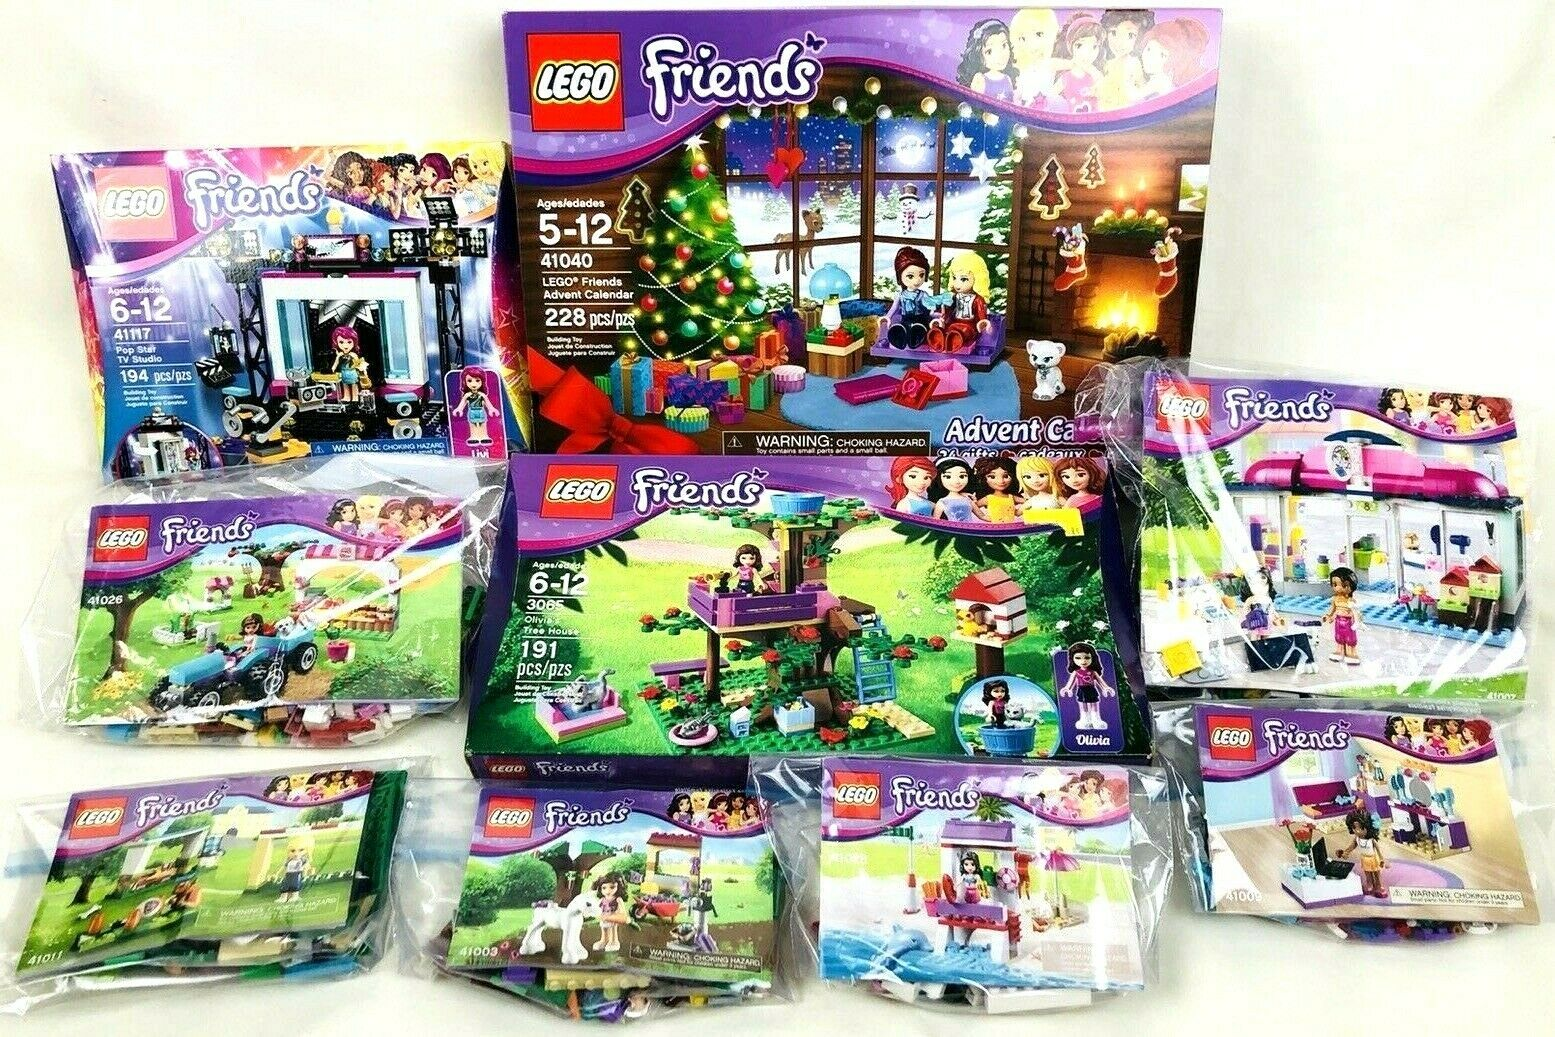 Lot of Lego Friends Complete Sets 41040 41117 3065 3065 3065 41007 41026 41009 41003 41028 870661